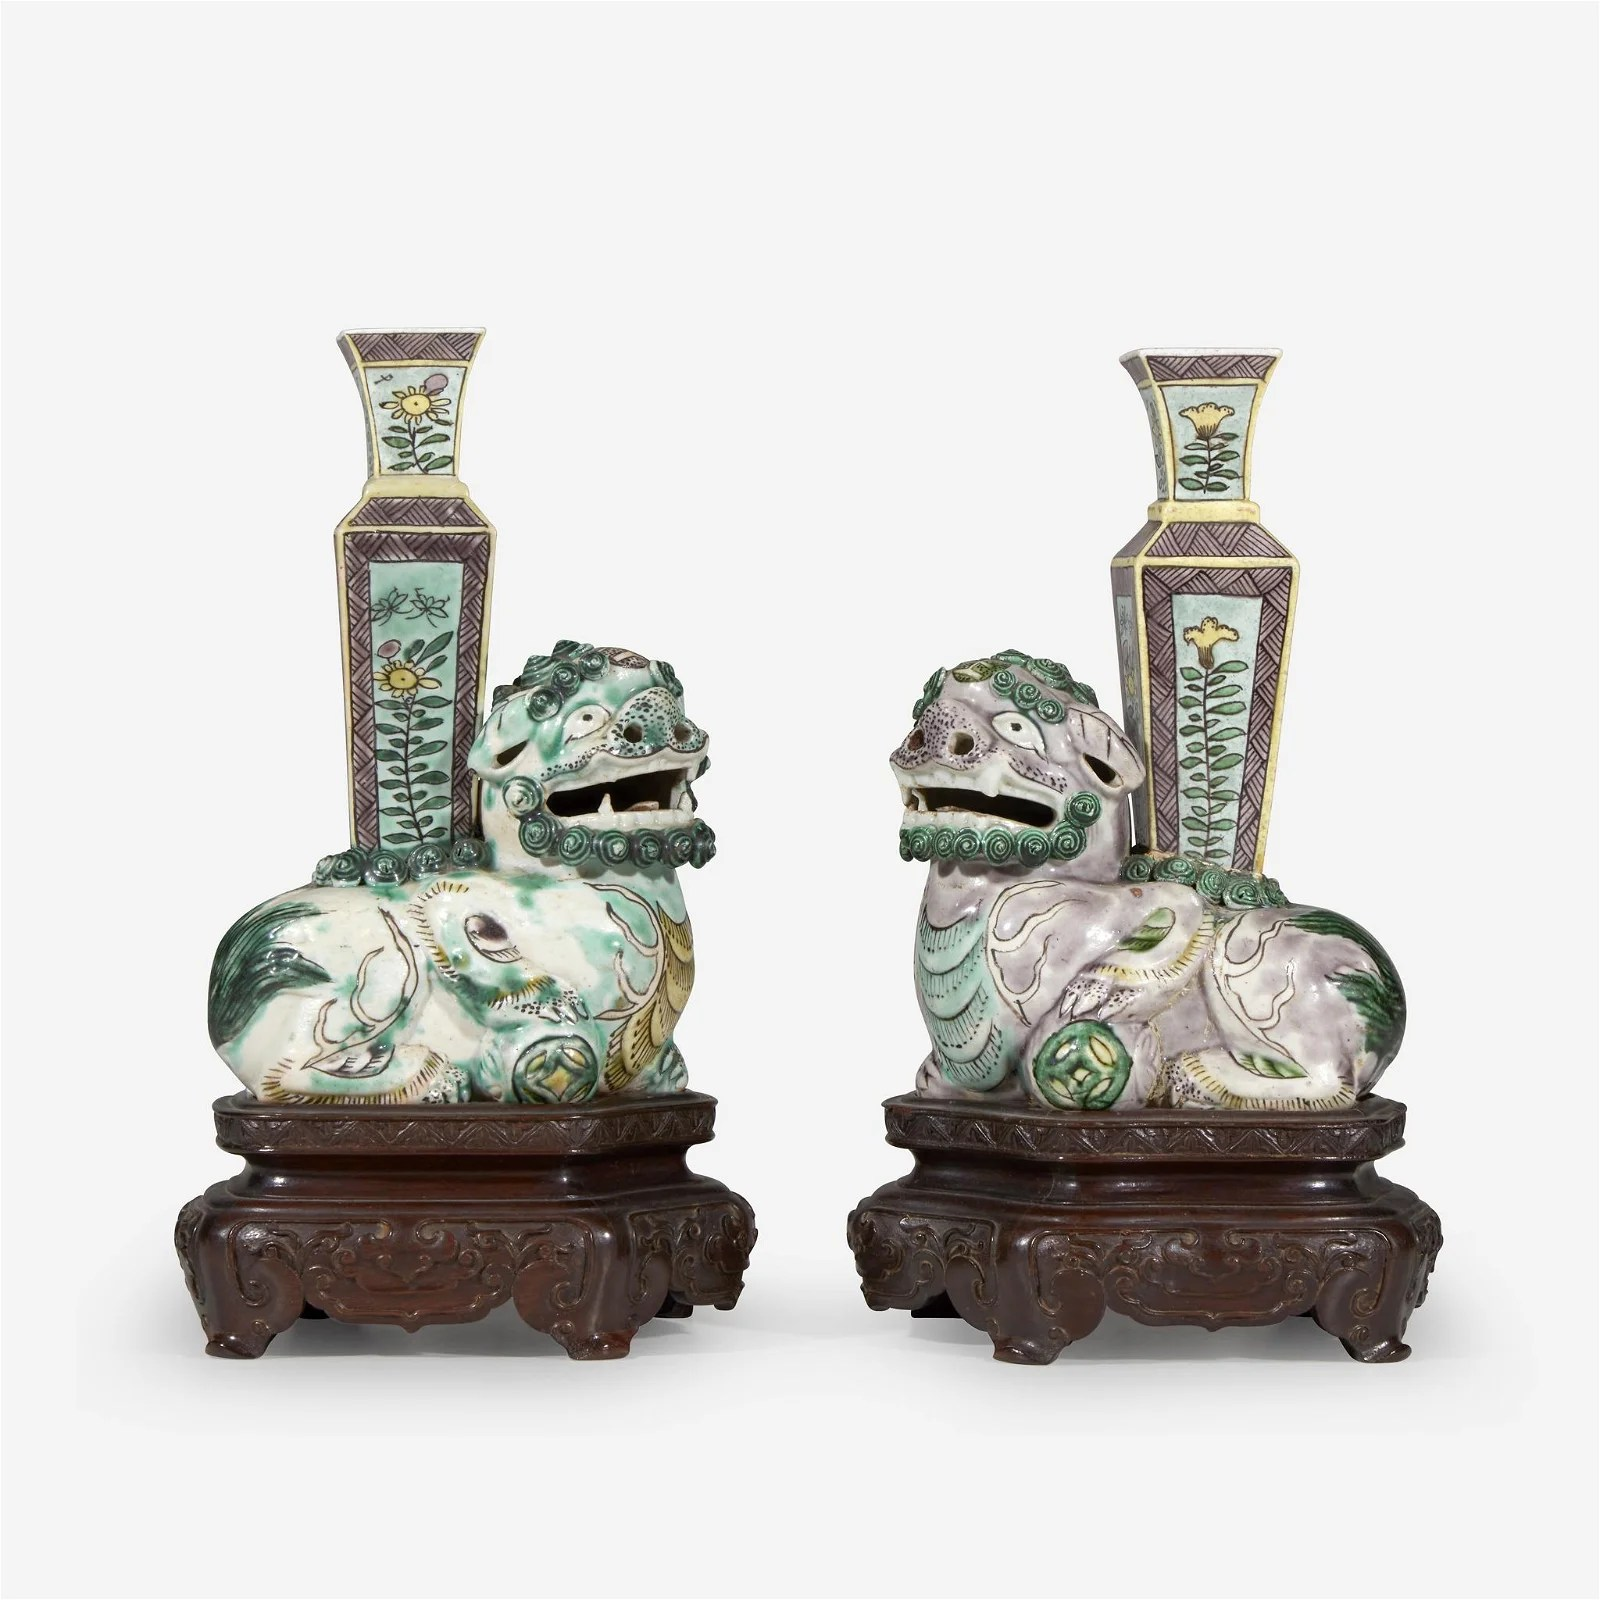 An associated pair of small Chinese famille verte